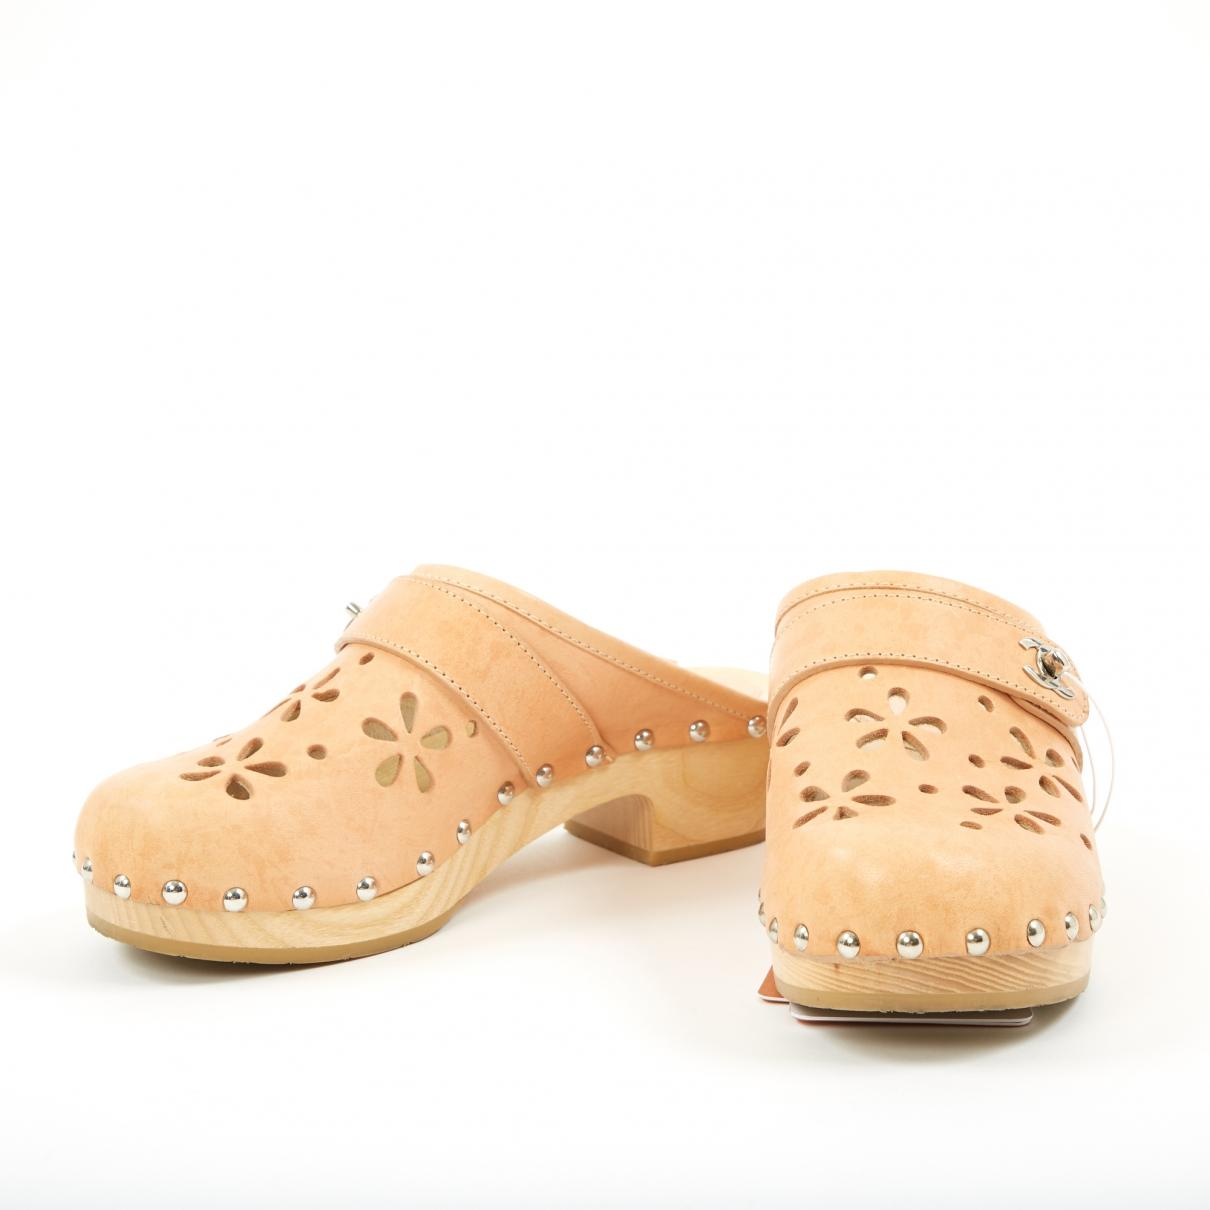 4c87fd9e9bb Chanel Beige Leather Mules   Clogs in Natural - Lyst